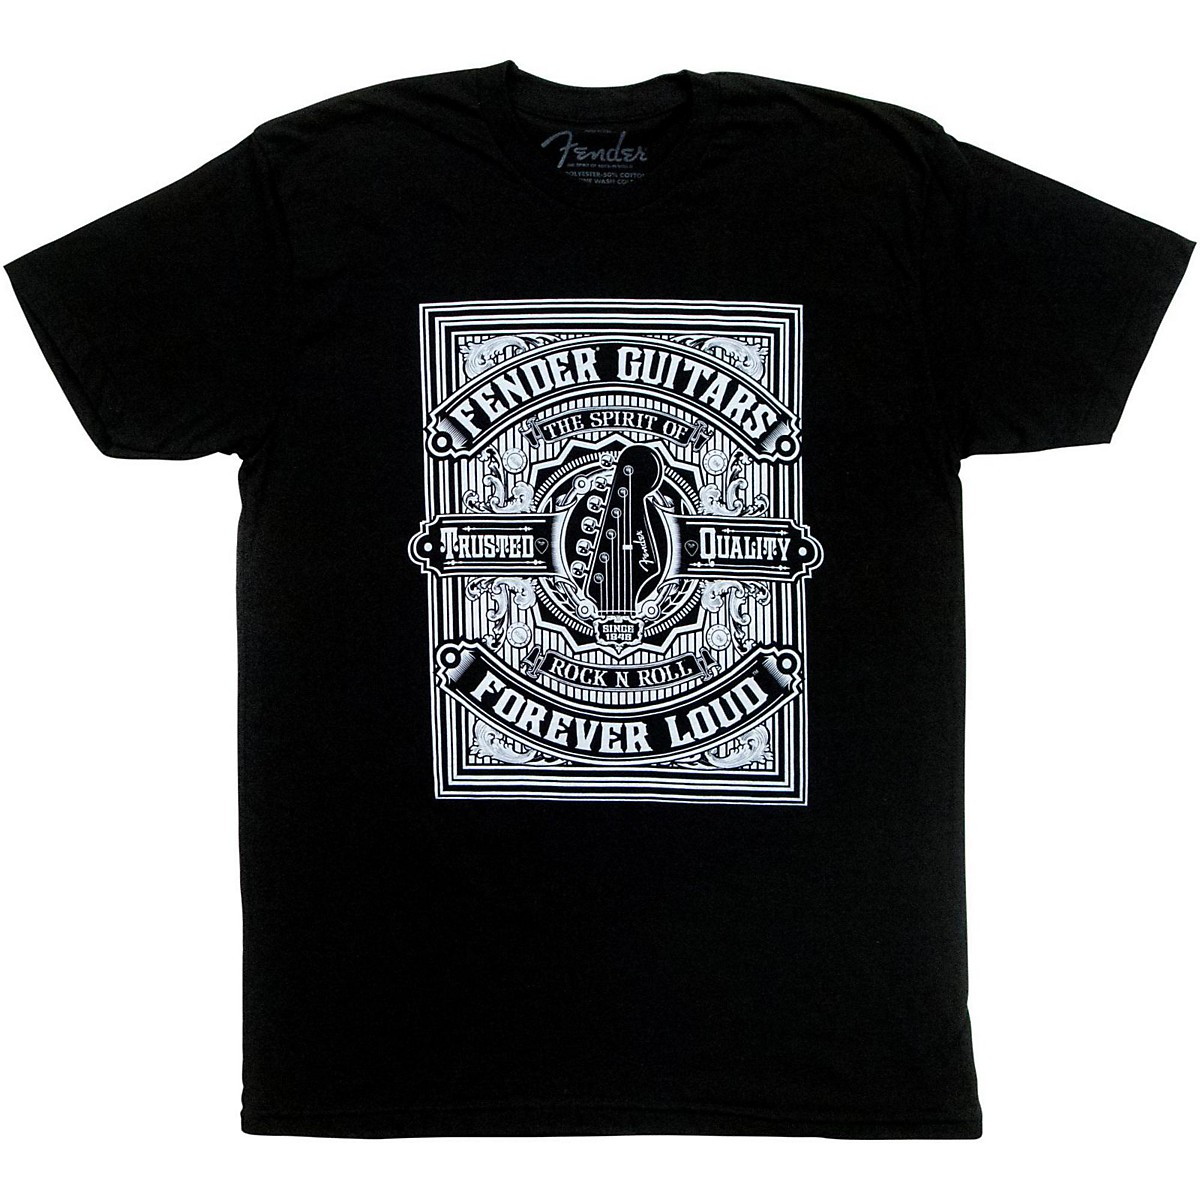 Fender Forever Loud Trusted Quality T-Shirt